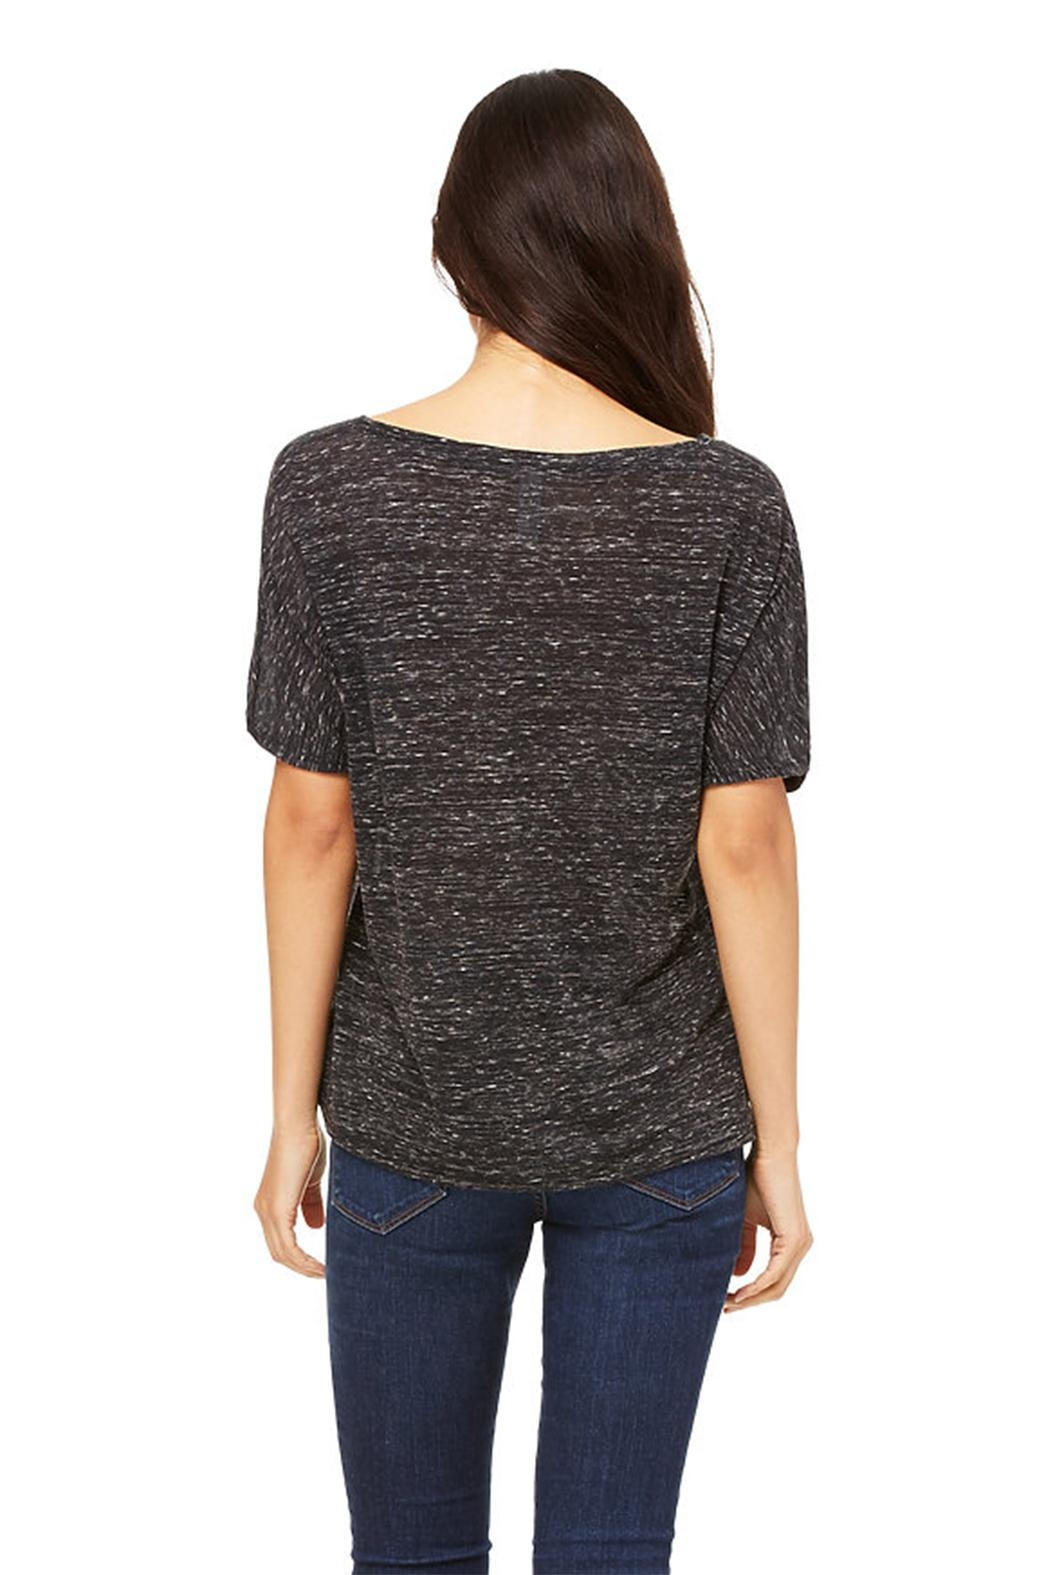 Blank Bella + Canvas Black Marble Tee - Front Full Image